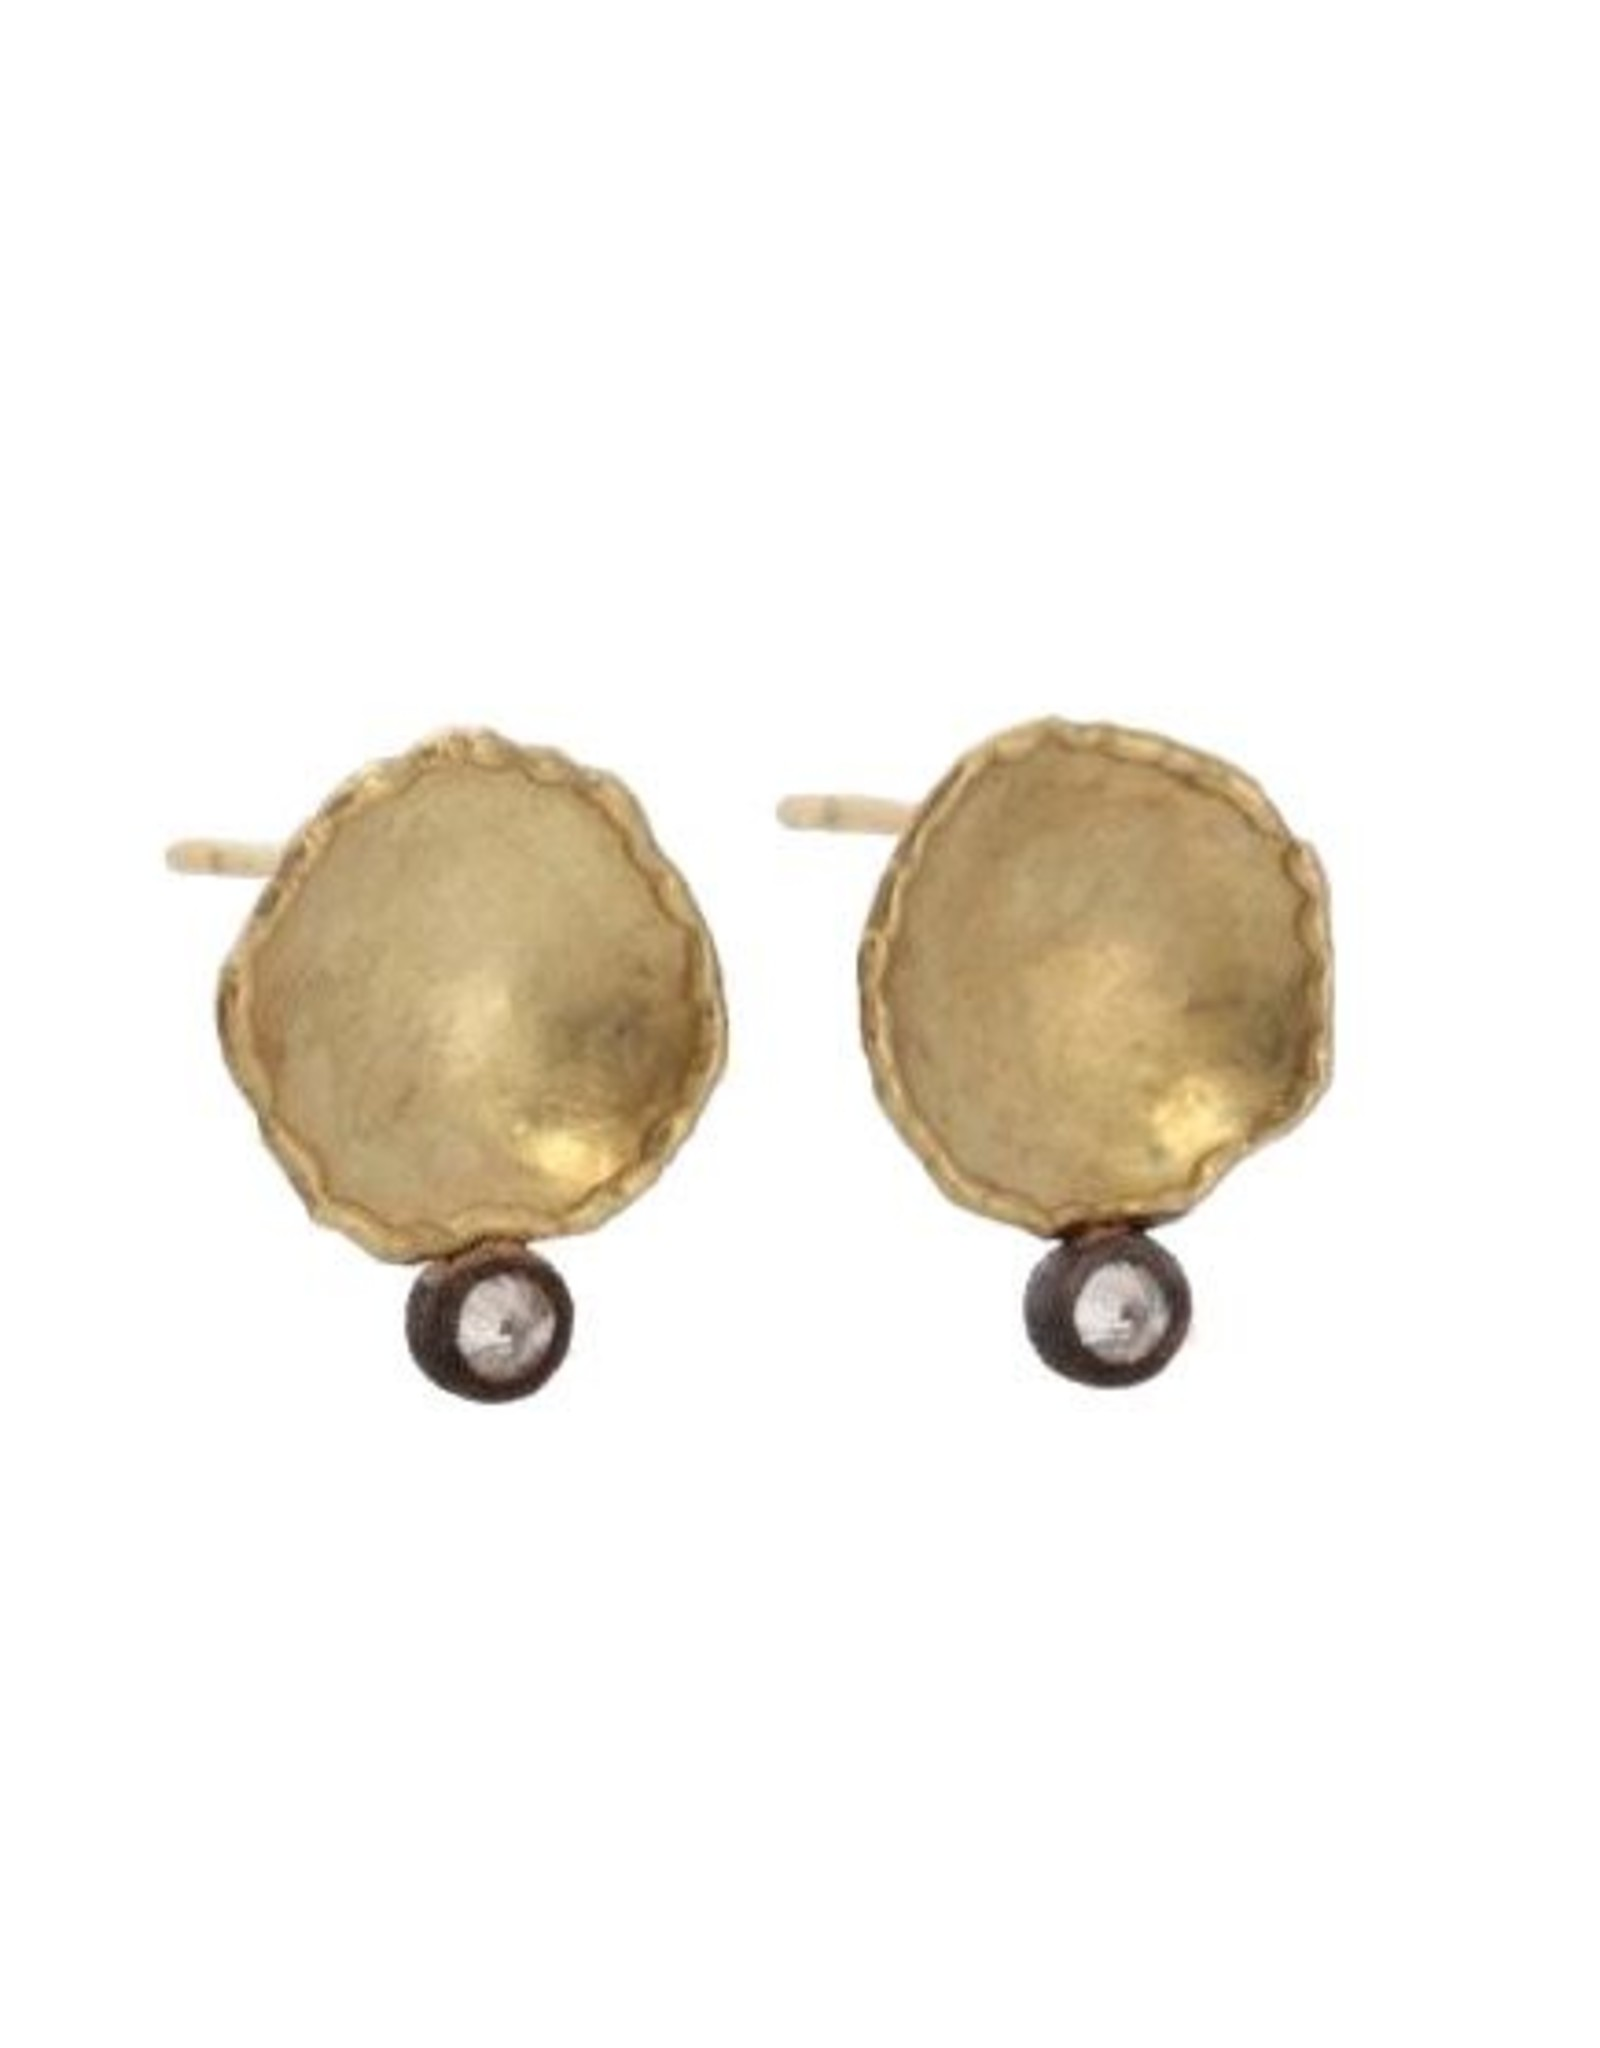 TAP by Todd Pownell Irregular Disc Earrings with Diamonds